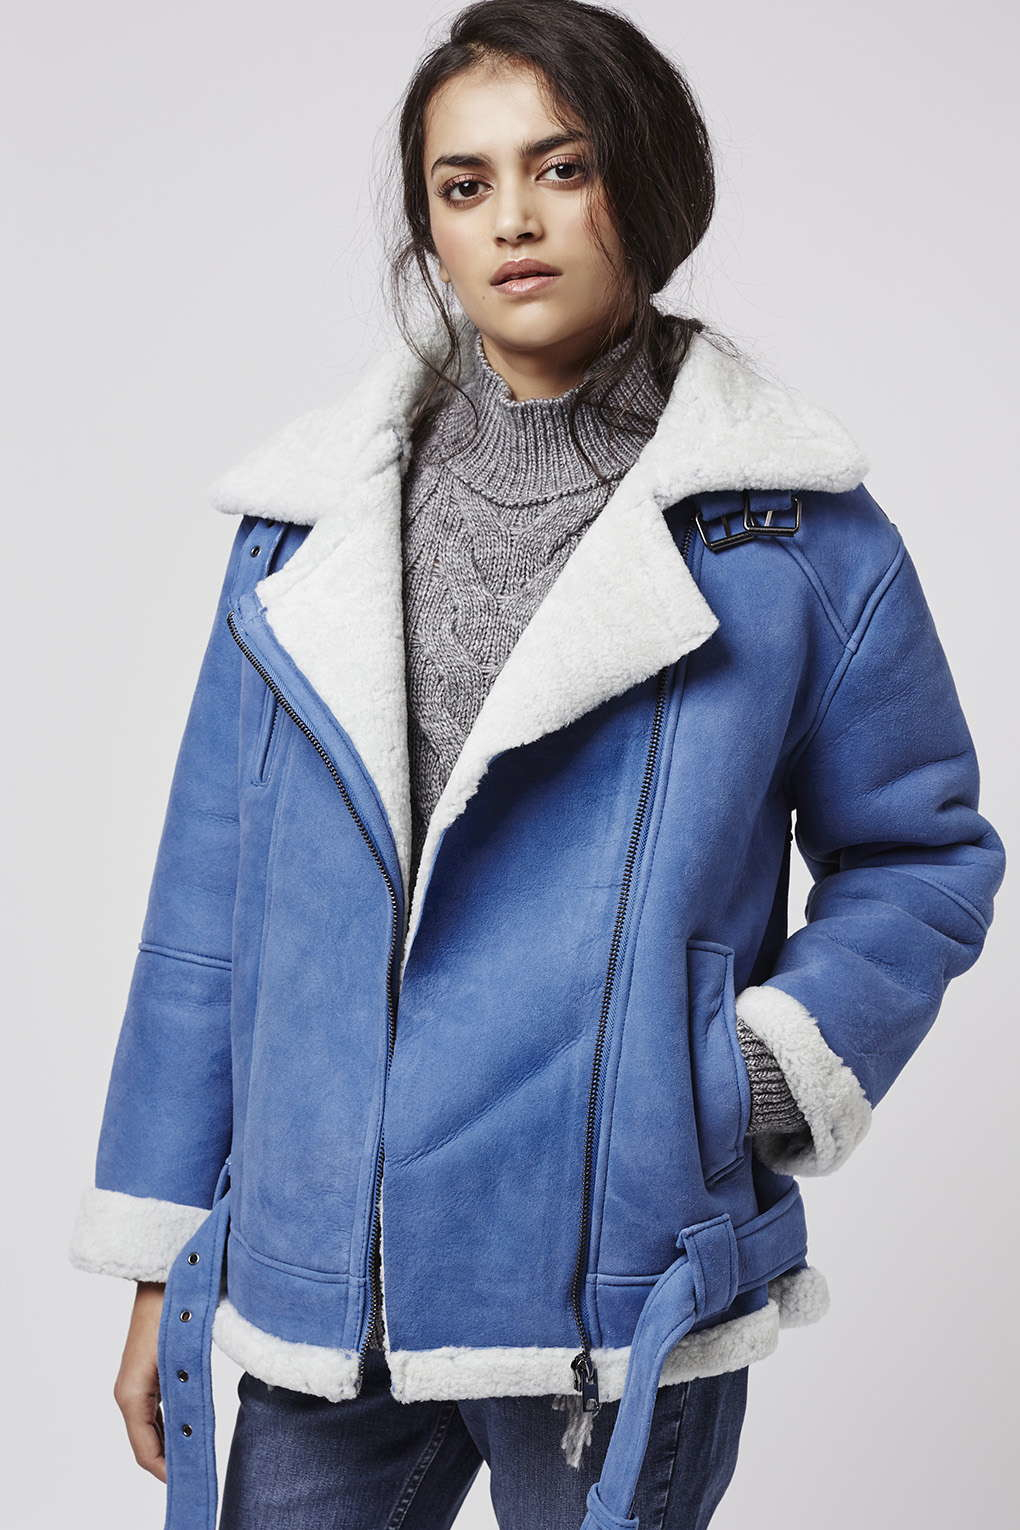 8a2df6fadde Blue Shearling Jacket - Best Picture Of Blue Imageve.Org